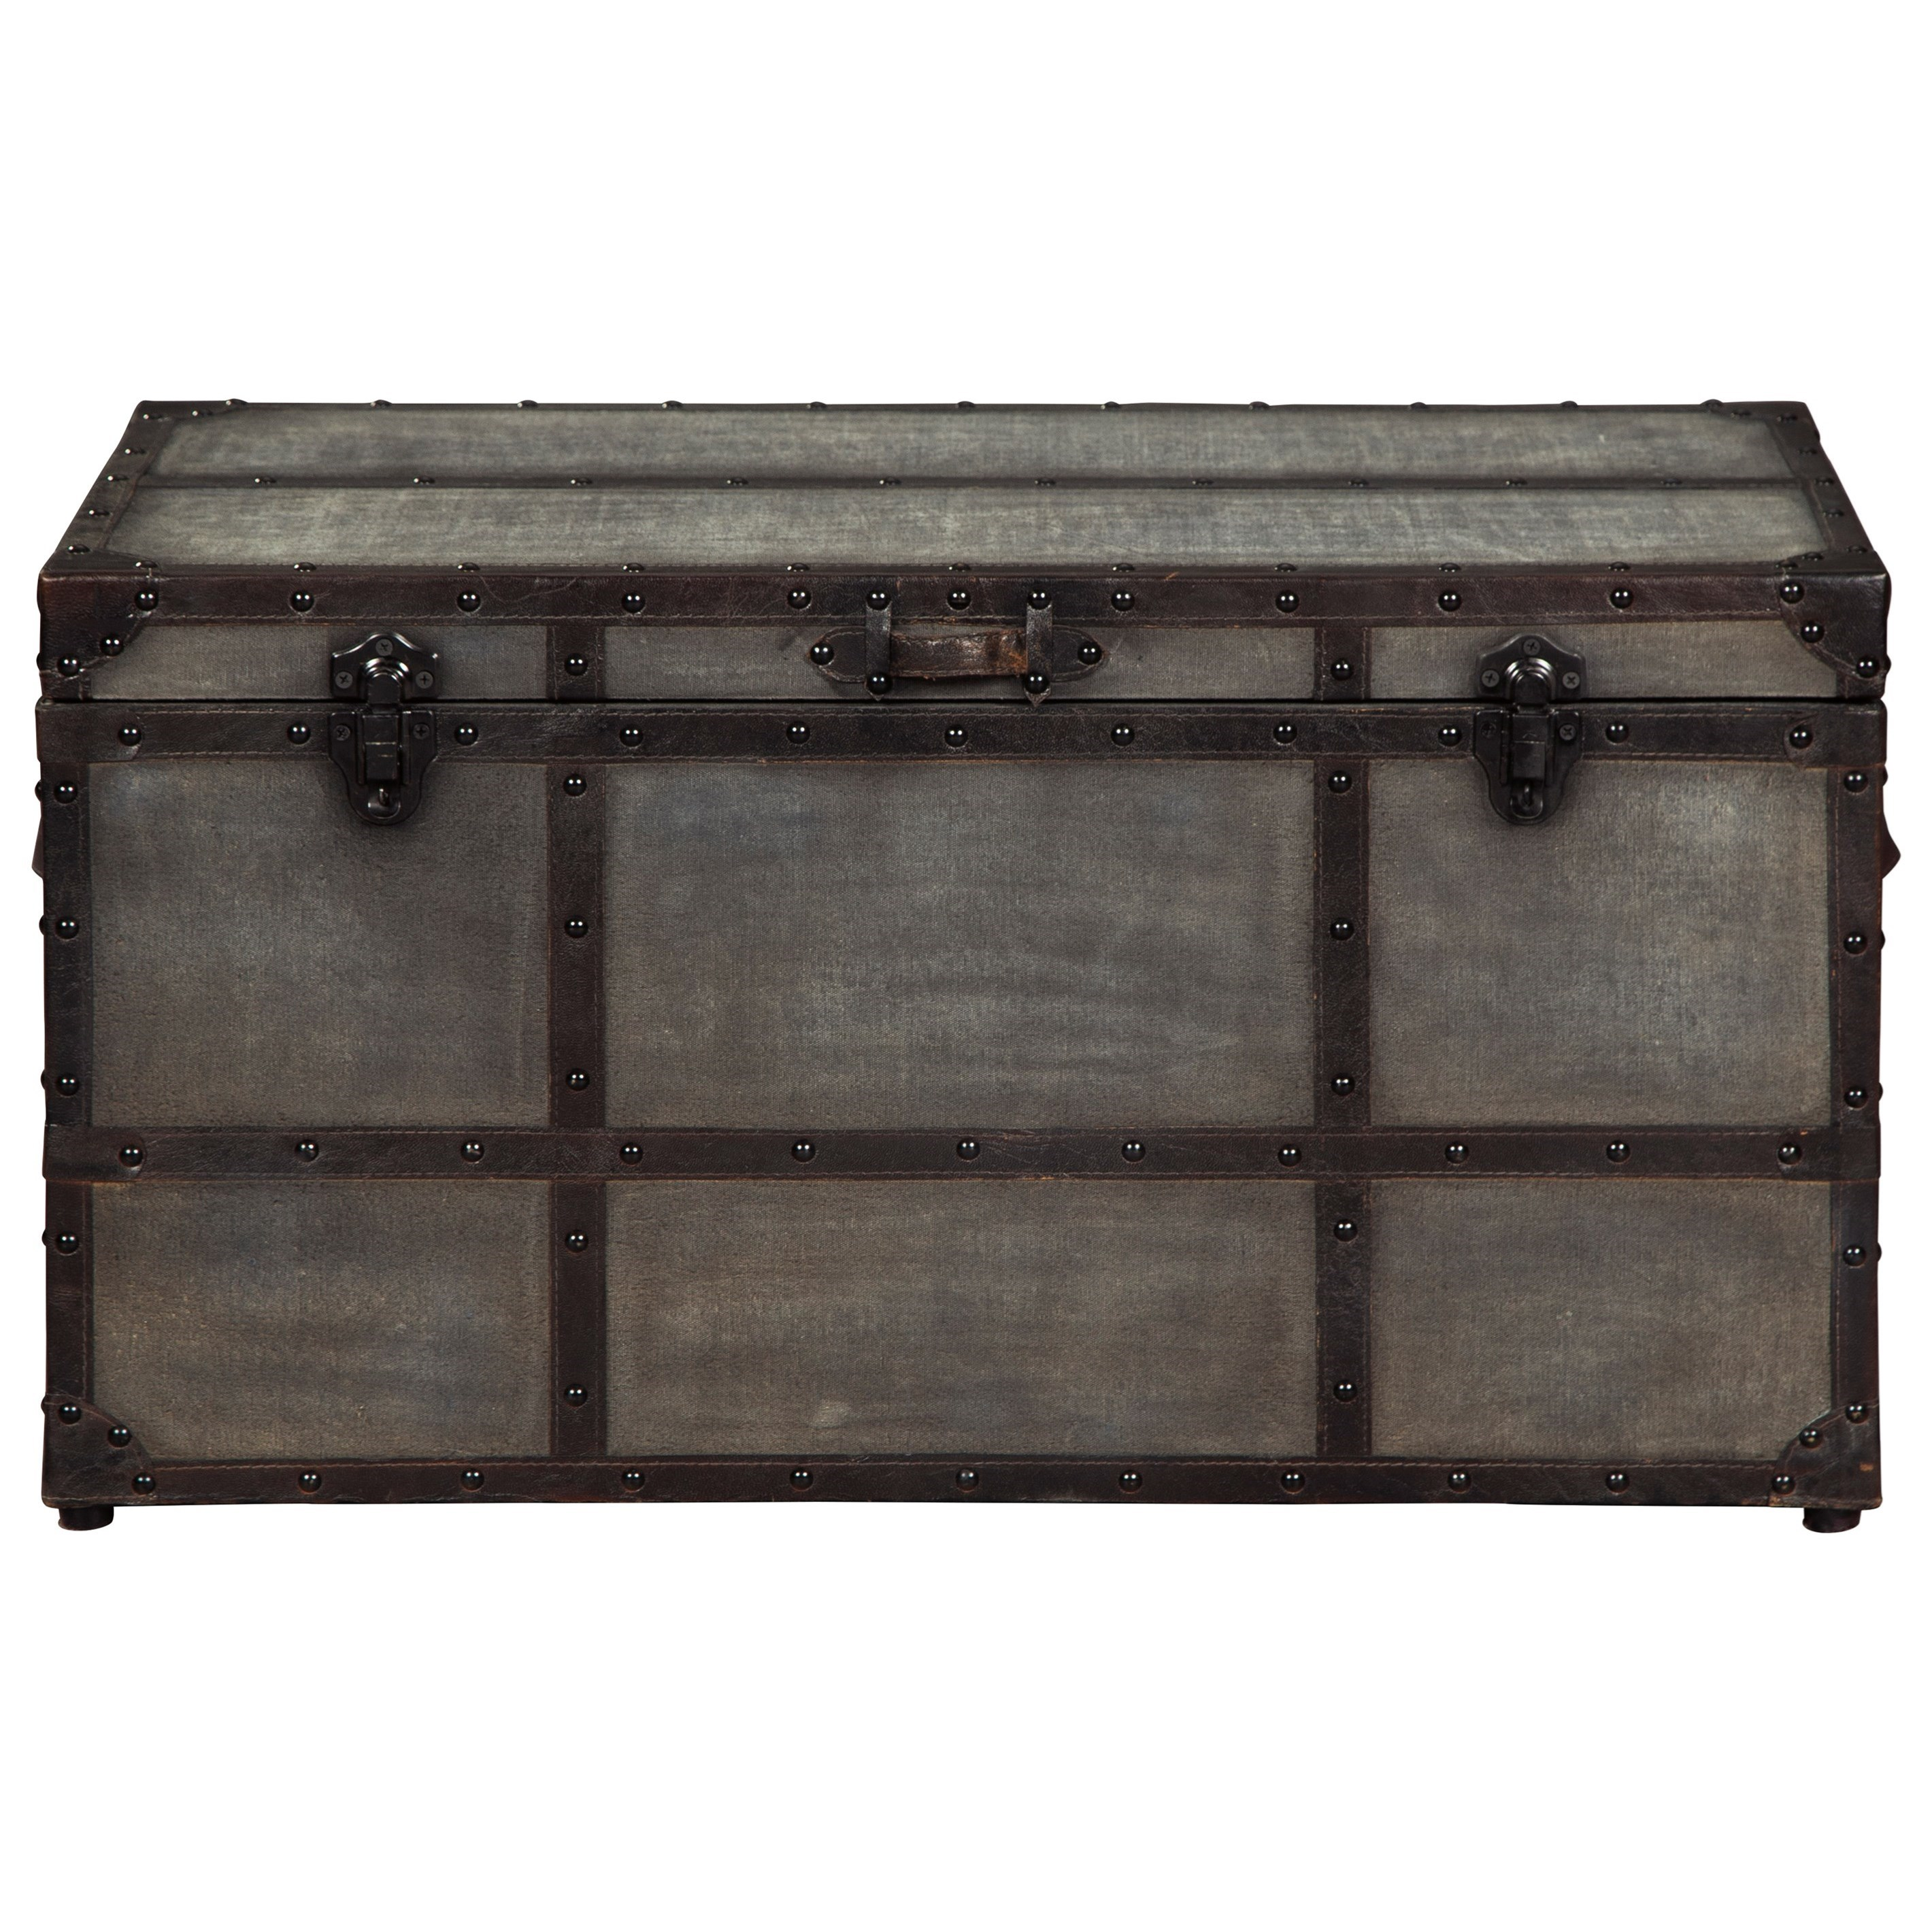 Industrial Style Storage Trunk in Gray Cotton Canvas